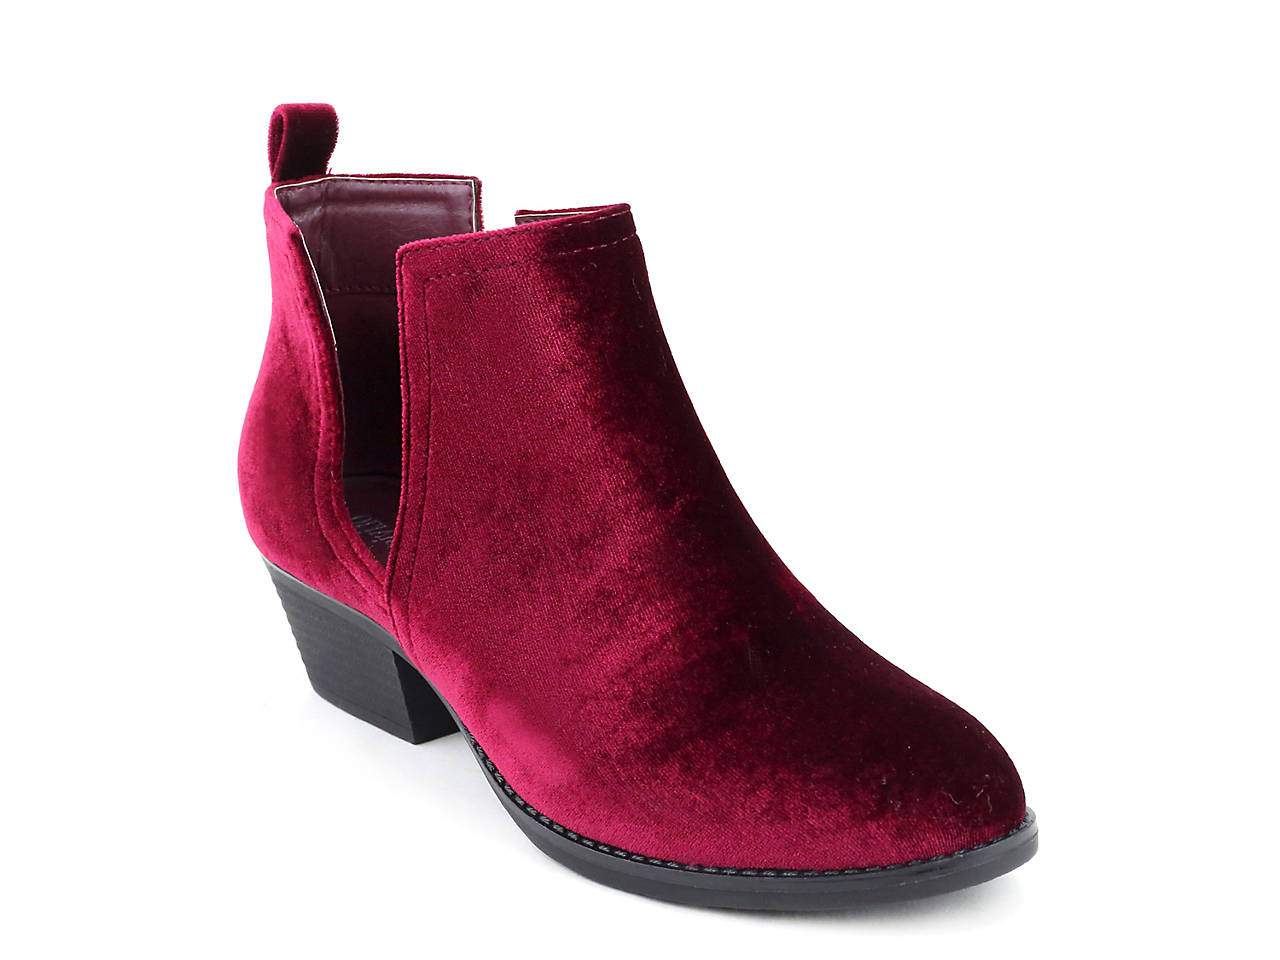 Olivia Miller Mineola Women's ... Ankle Boots discount under $60 free shipping best sale release dates for sale amazon cheap online C1cKPZVT6y